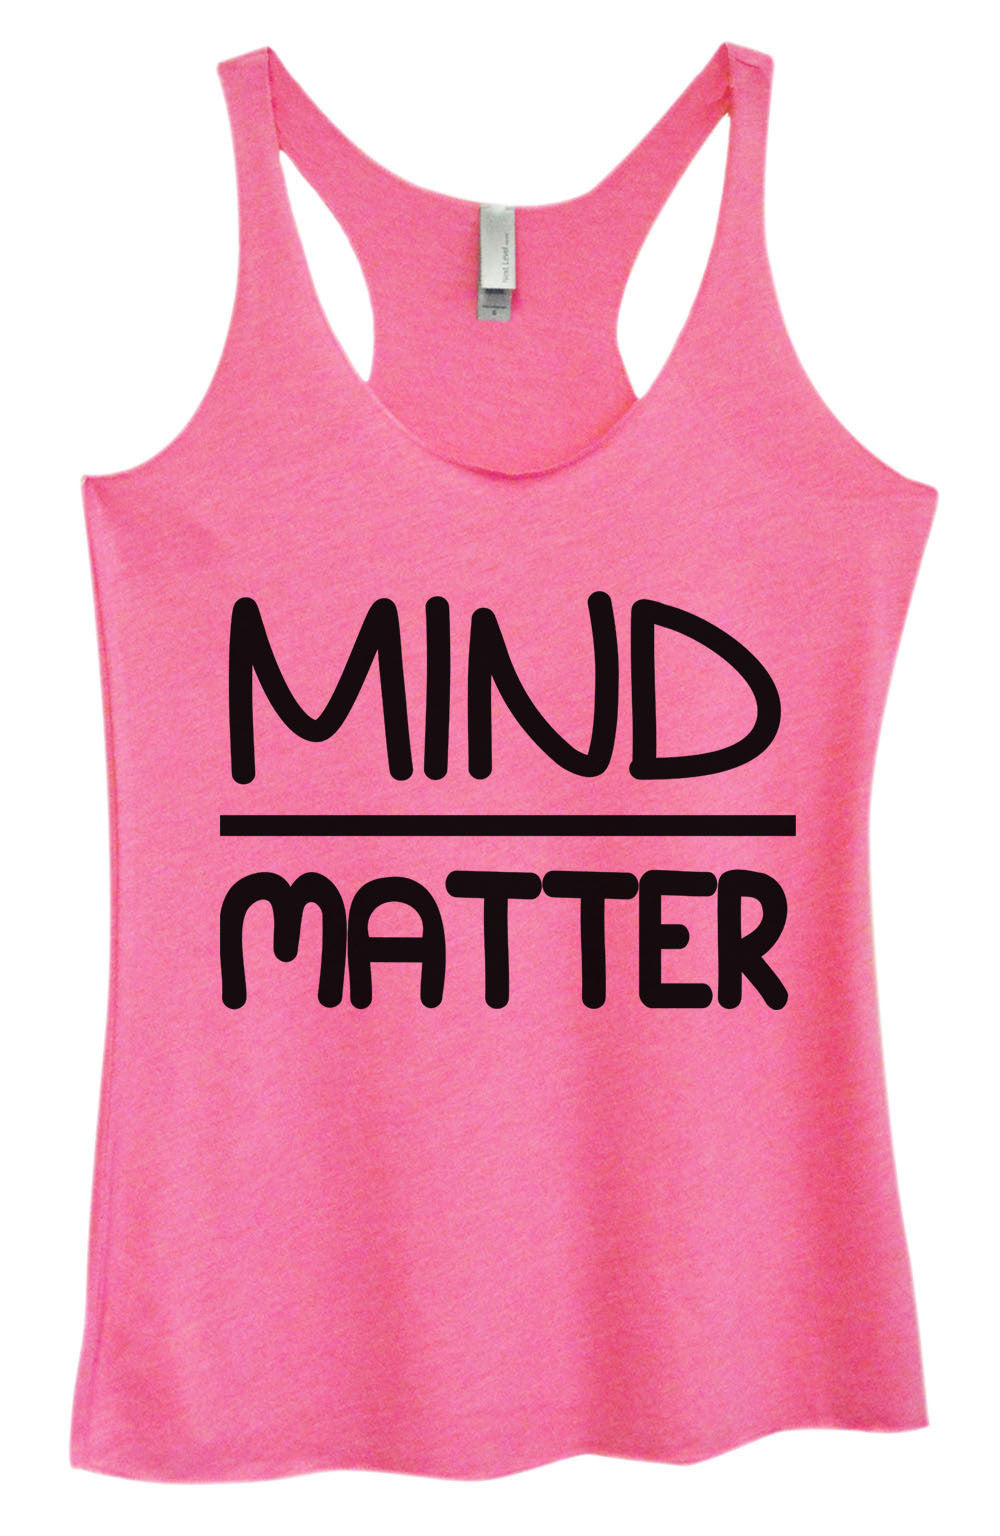 Womens Fashion Triblend Tank Top - Mind Matter - Tri-555 - Funny Shirts Tank Tops Burnouts and Triblends  - 3